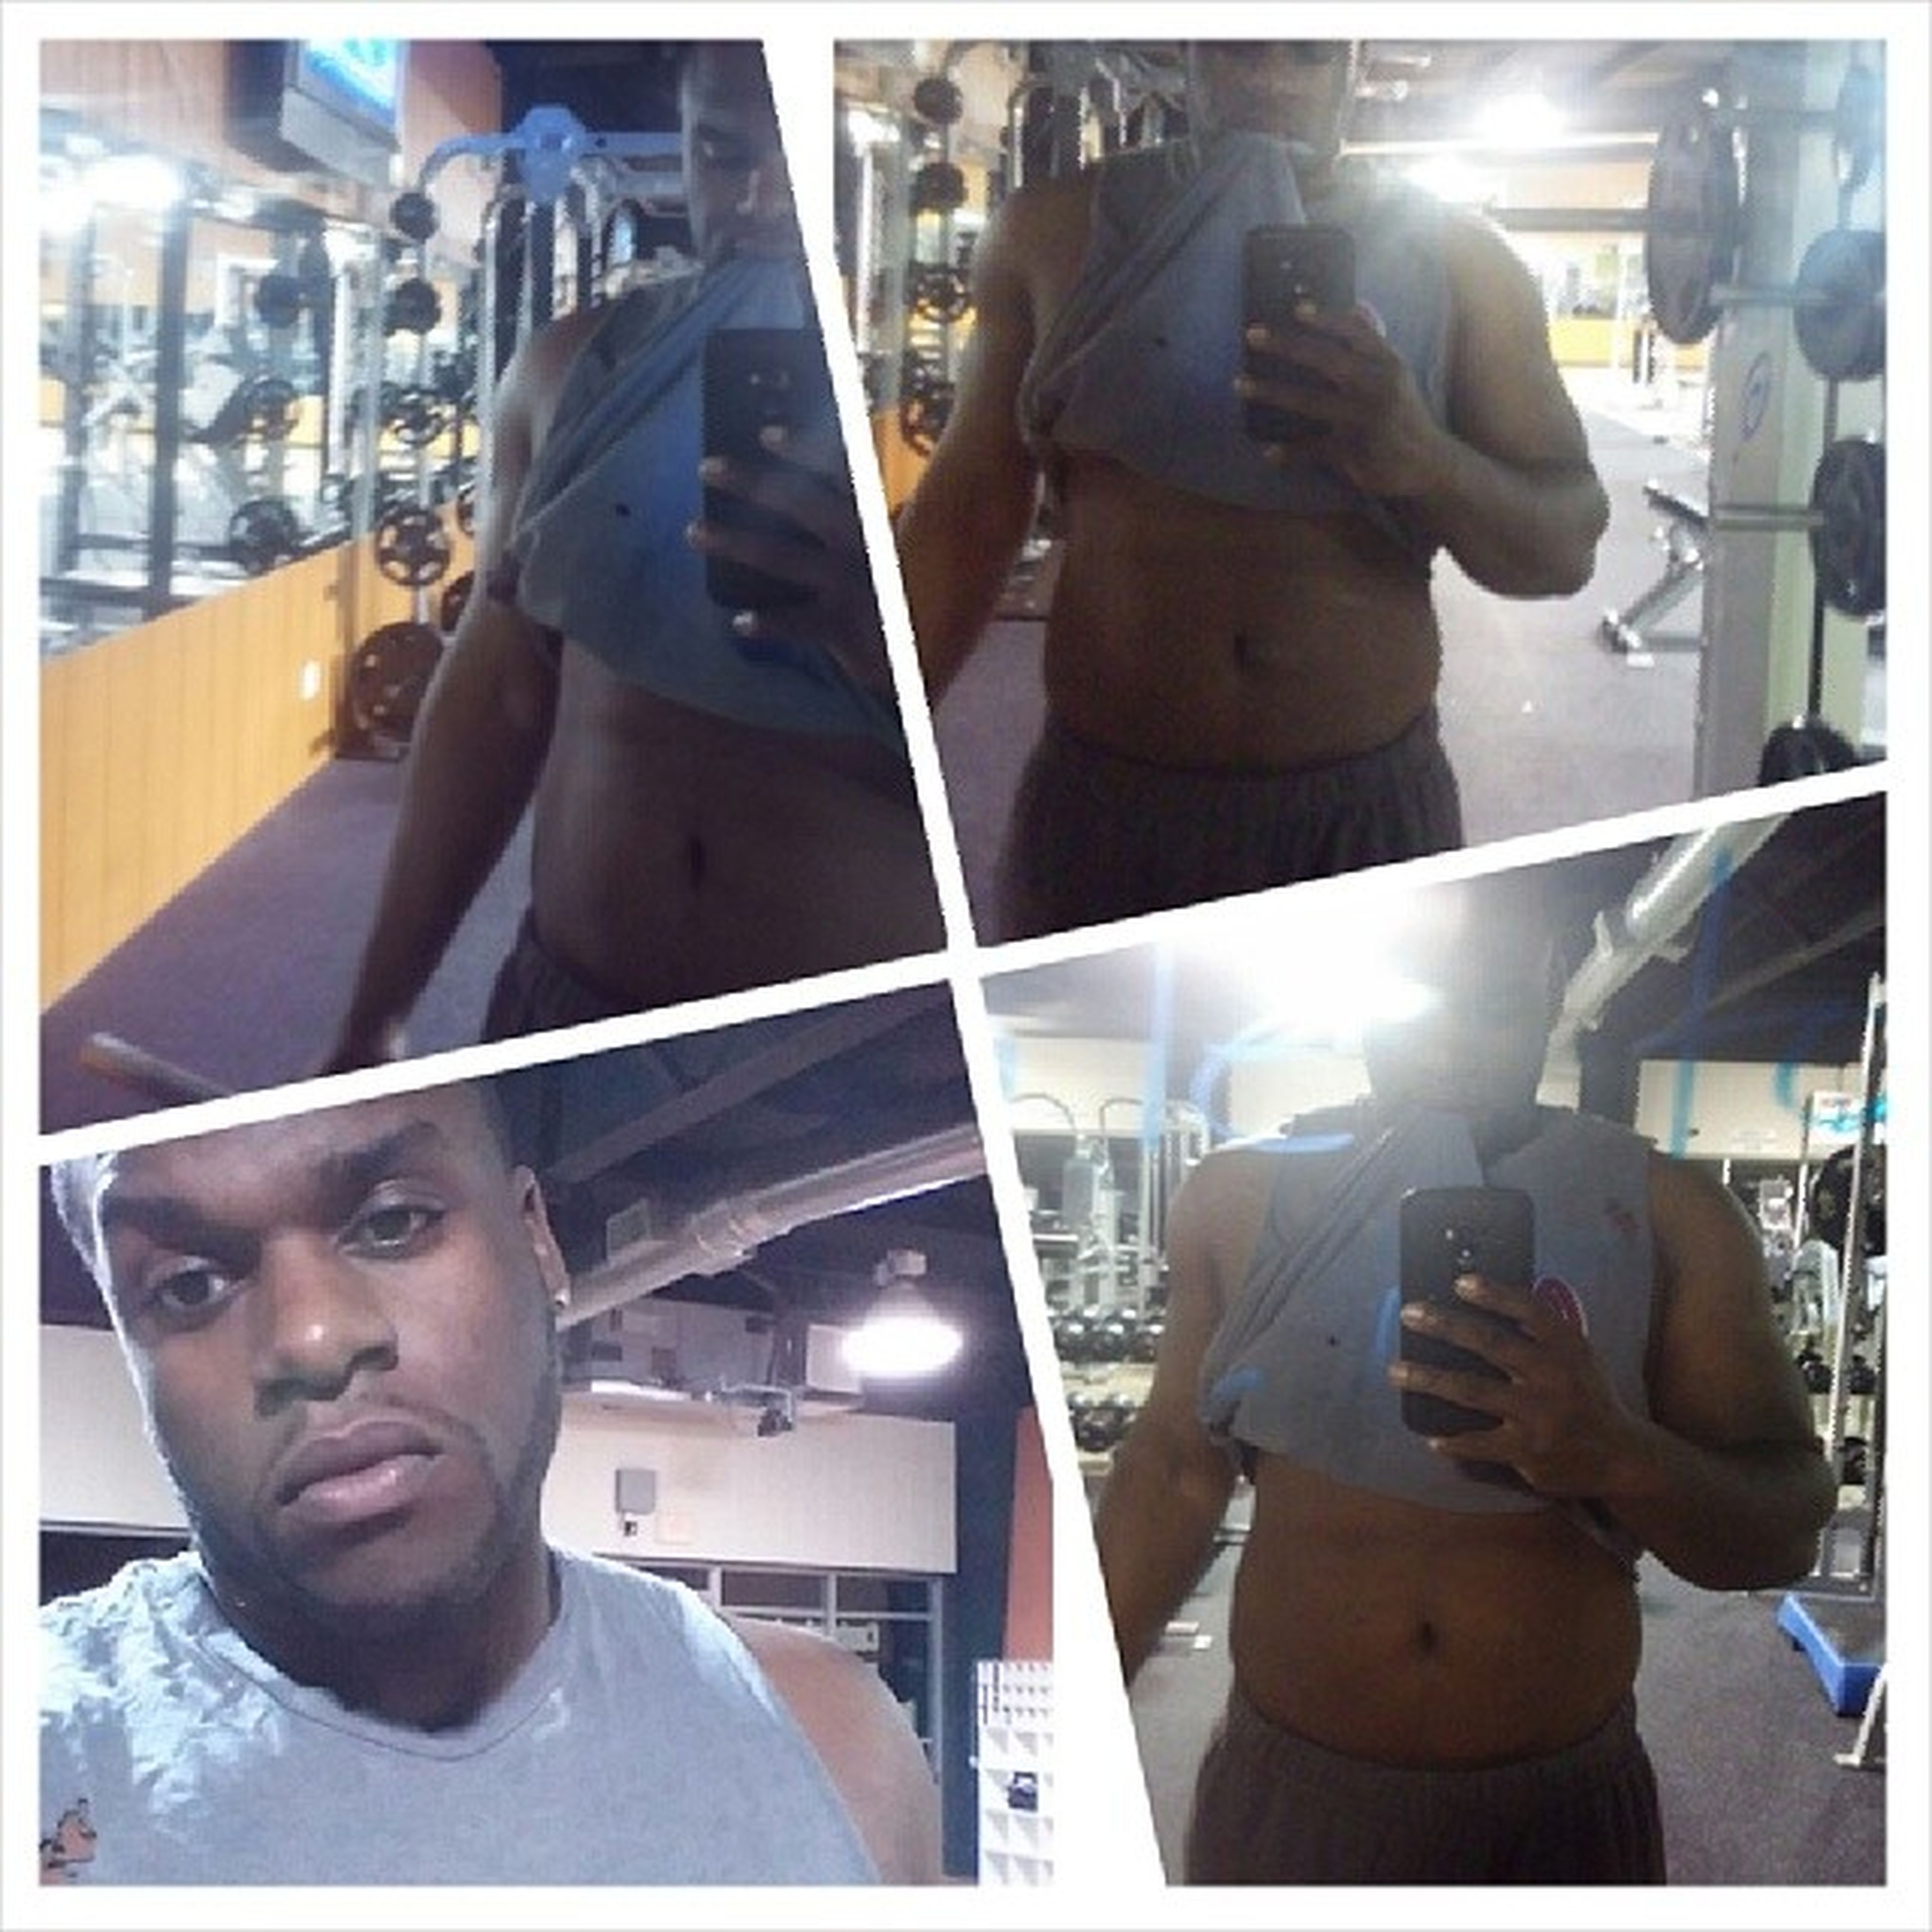 Late night workout, why the hell do abs take so long????? Stillonmy2pack KeepUp Comeon GymTime gains gymlife fit gymflow cardio sweat kingish